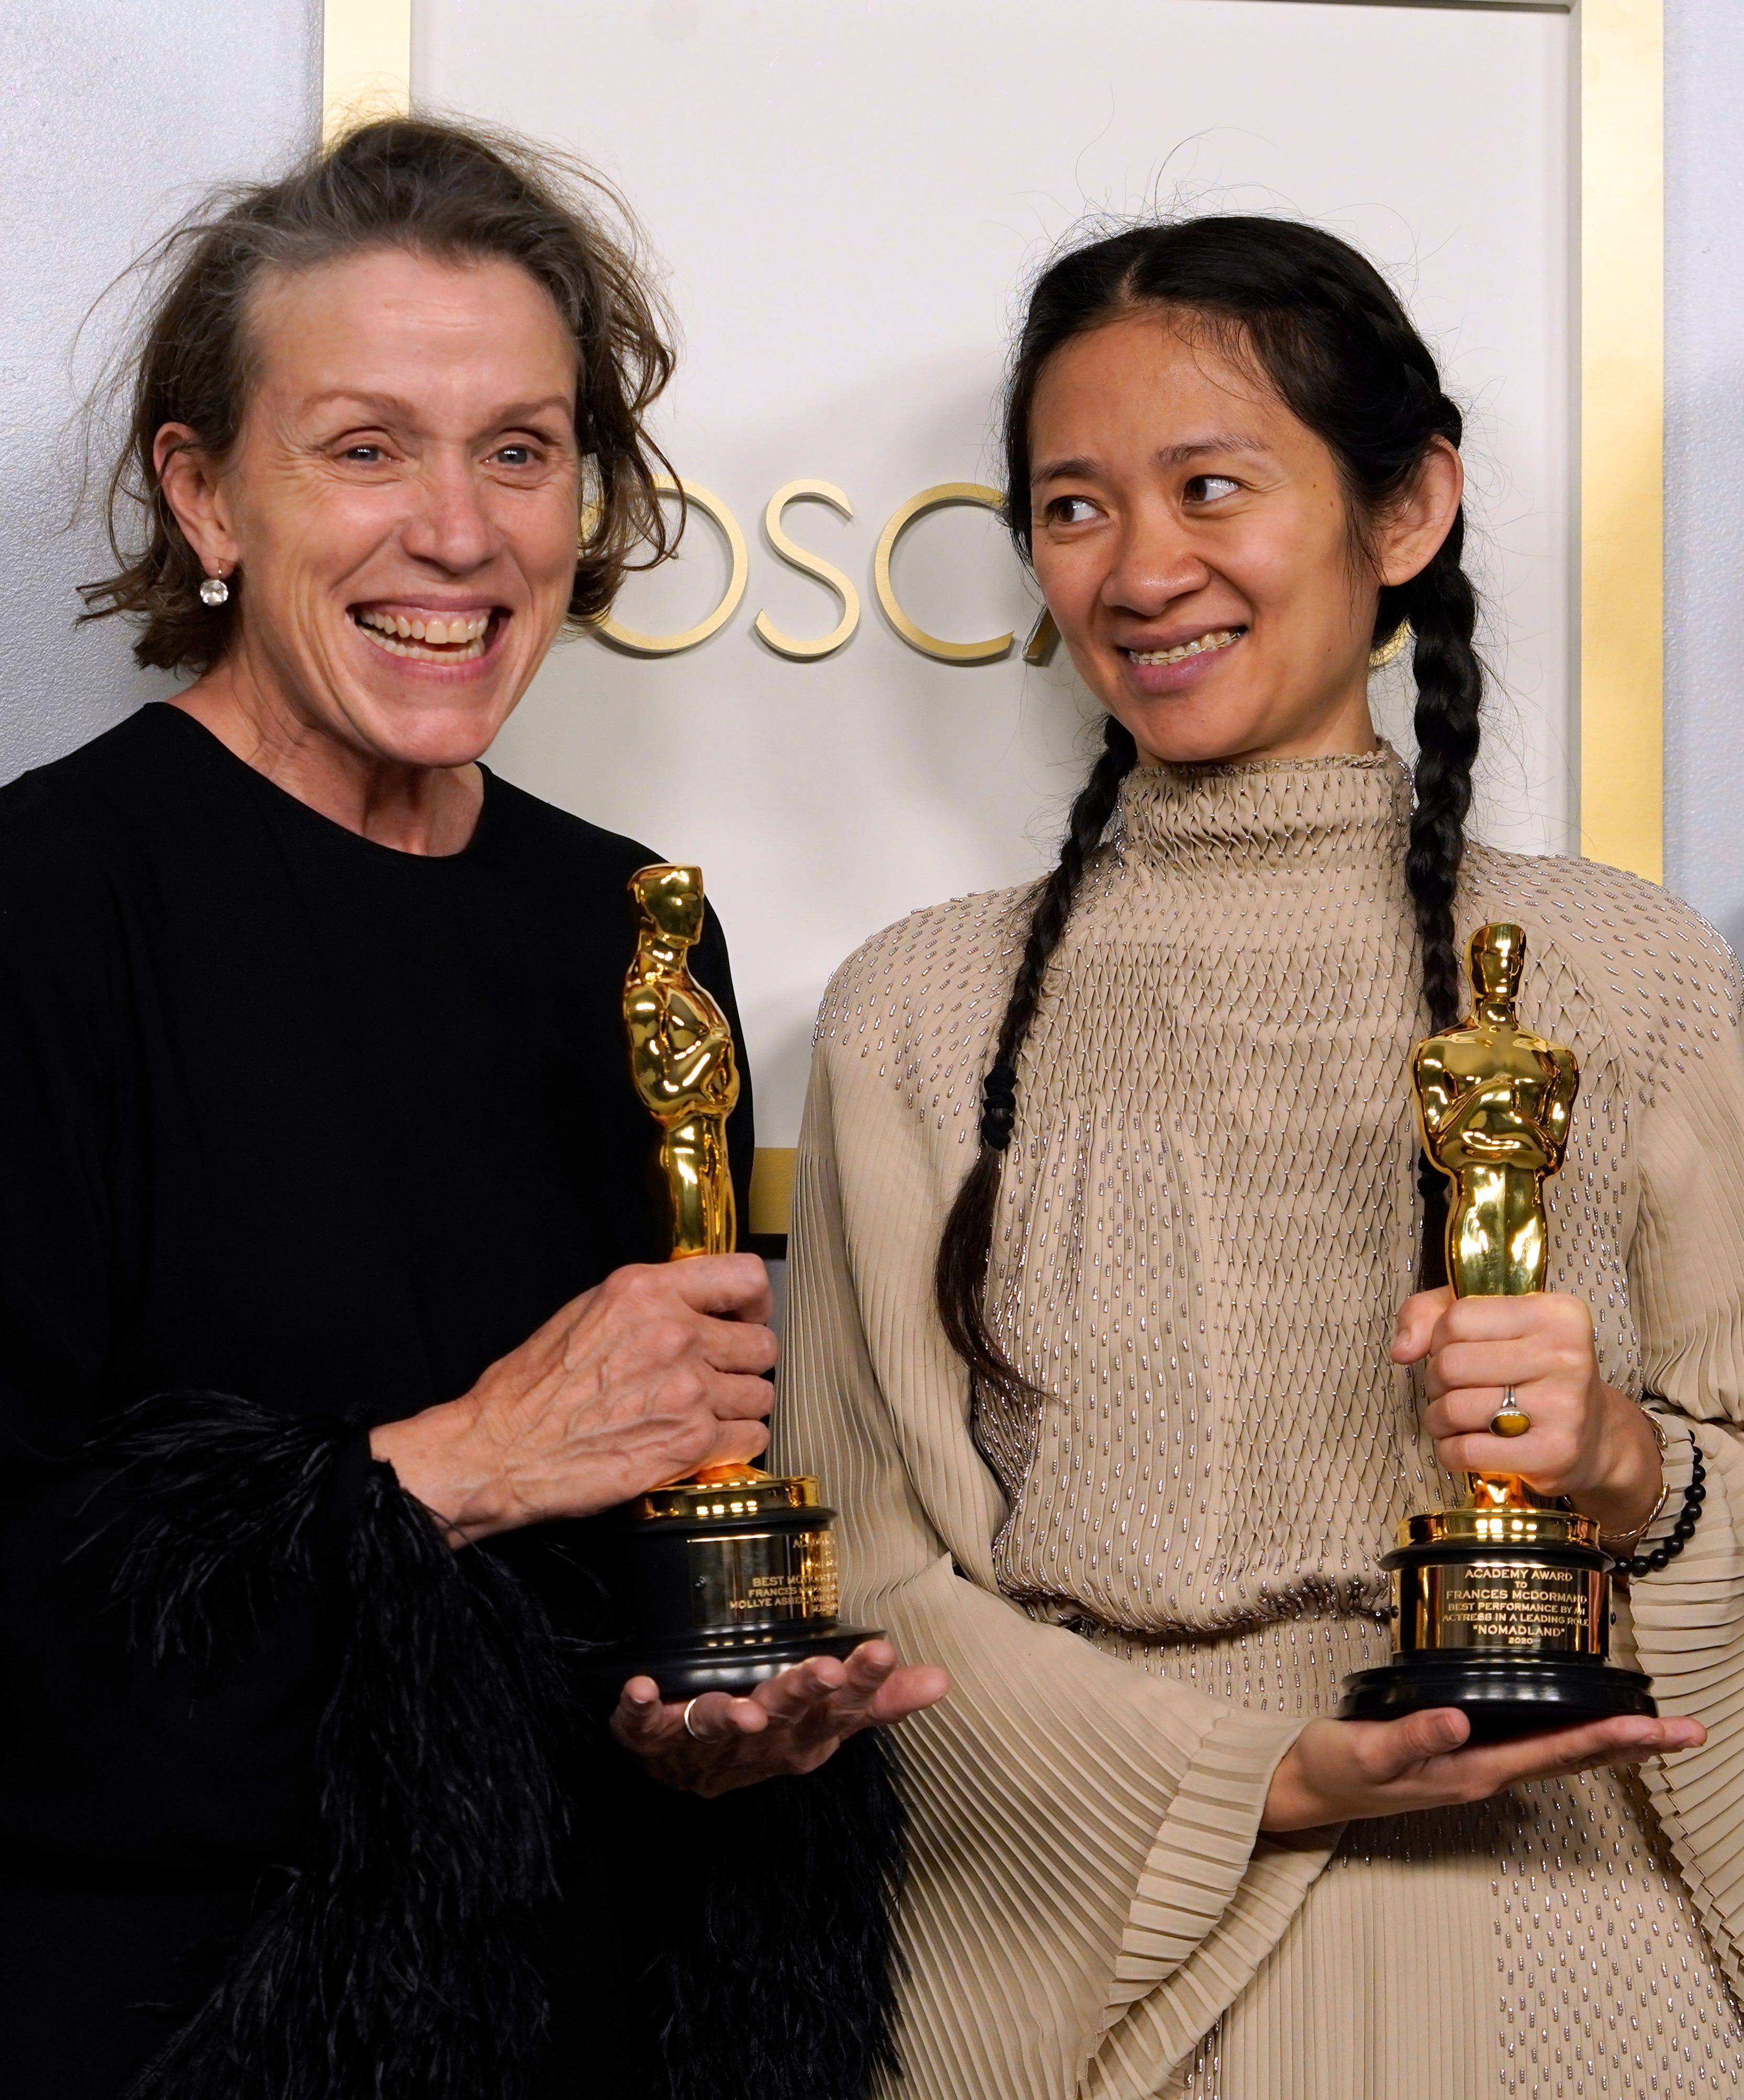 Frances McDormand talks  catharsis  of Oscar-winning  Nomadland,  says co-stars didn t know she acts